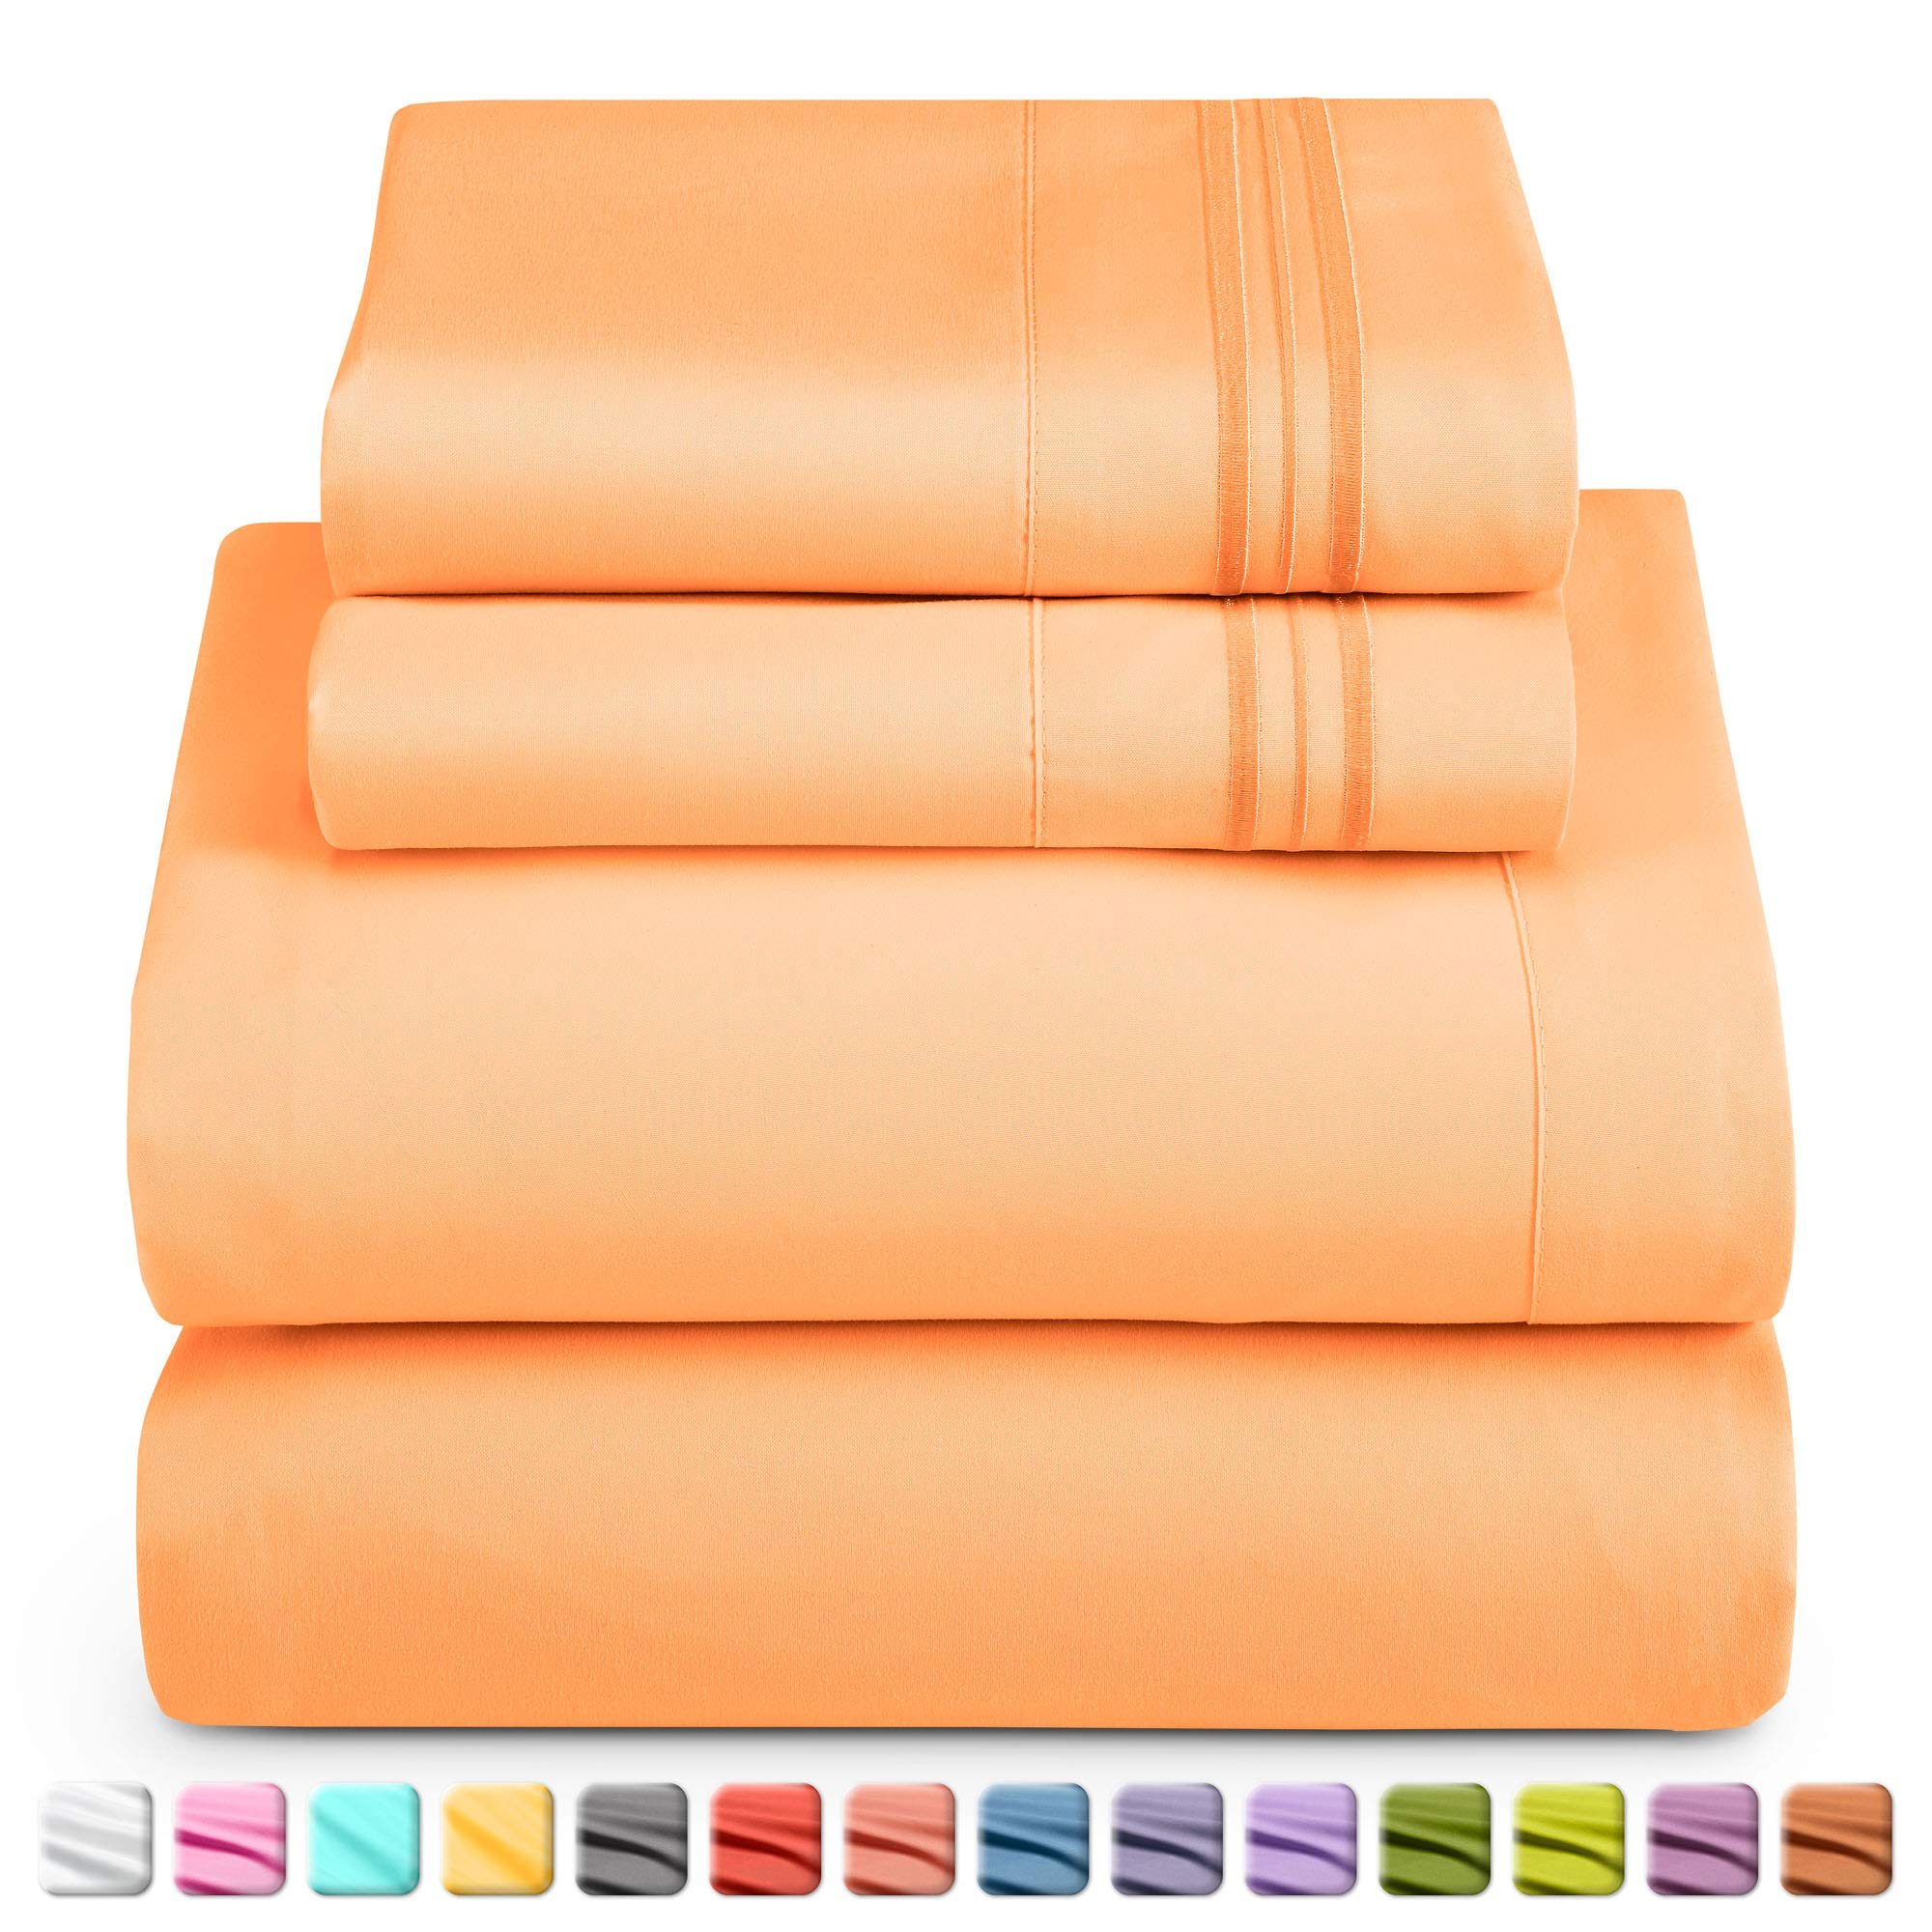 Nestl Deep Pocket Full Sheets: Full Size Bed Sheets with Fitted and Flat Sheet, Pillow Cases - Extra Soft Microfiber Bedsheet Set with Deep Pockets for Full Sized Mattress - Apricot Buff Orange